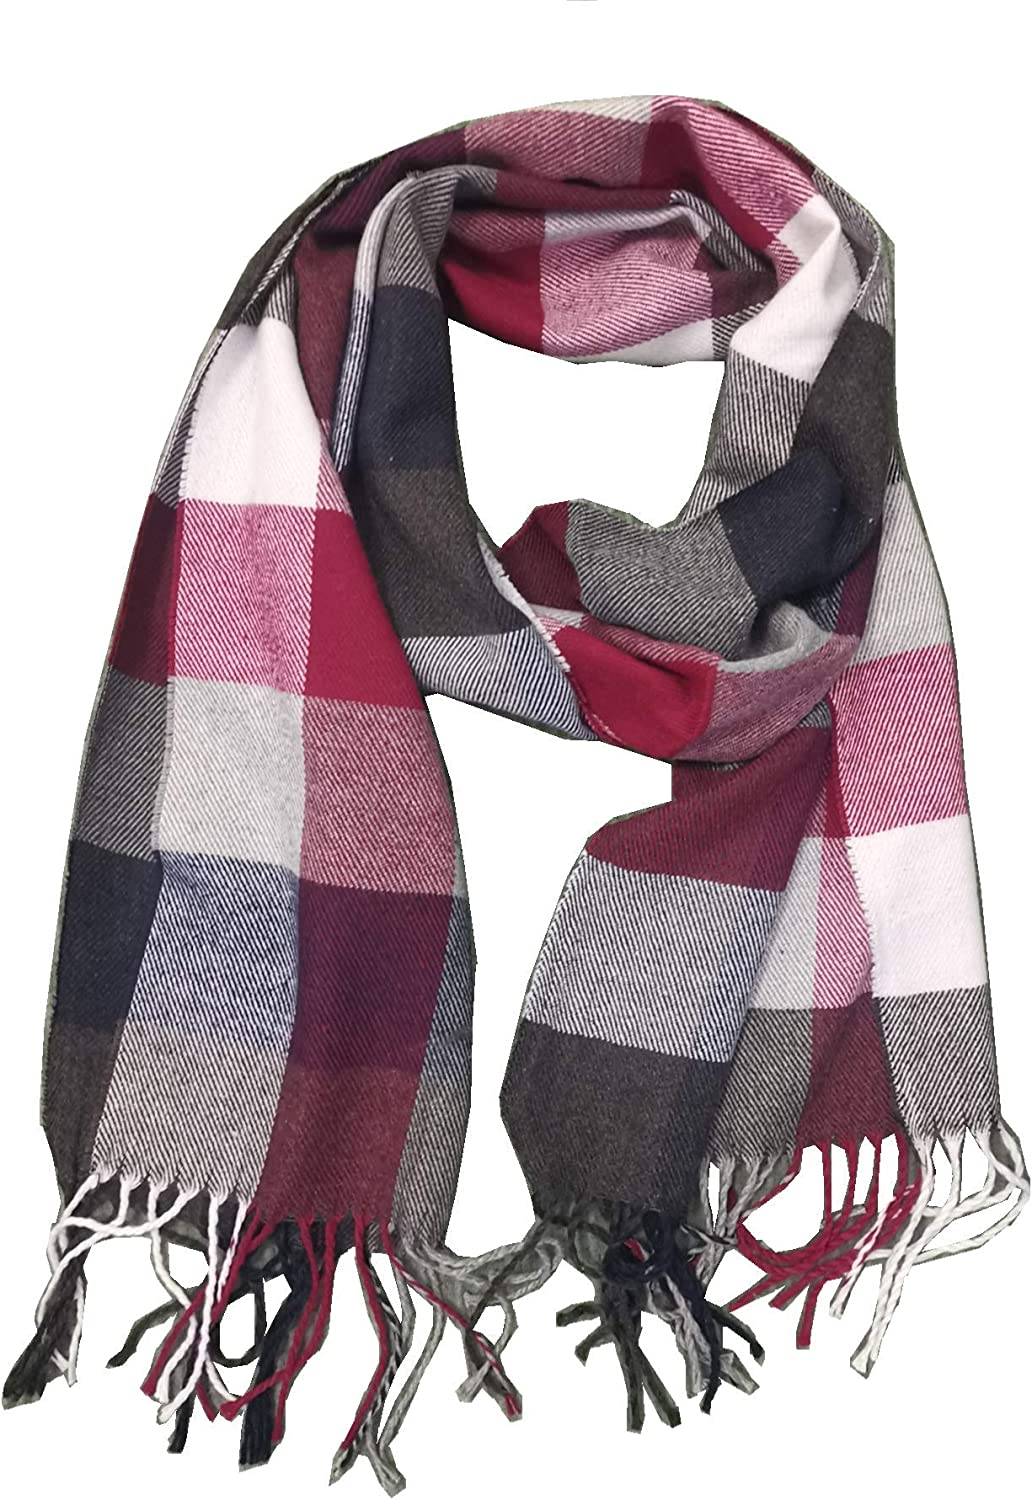 Wander Agio Gifts Kids Scarf Warm Scarves 2021 spring and summer new Wo Parent-child Shawls